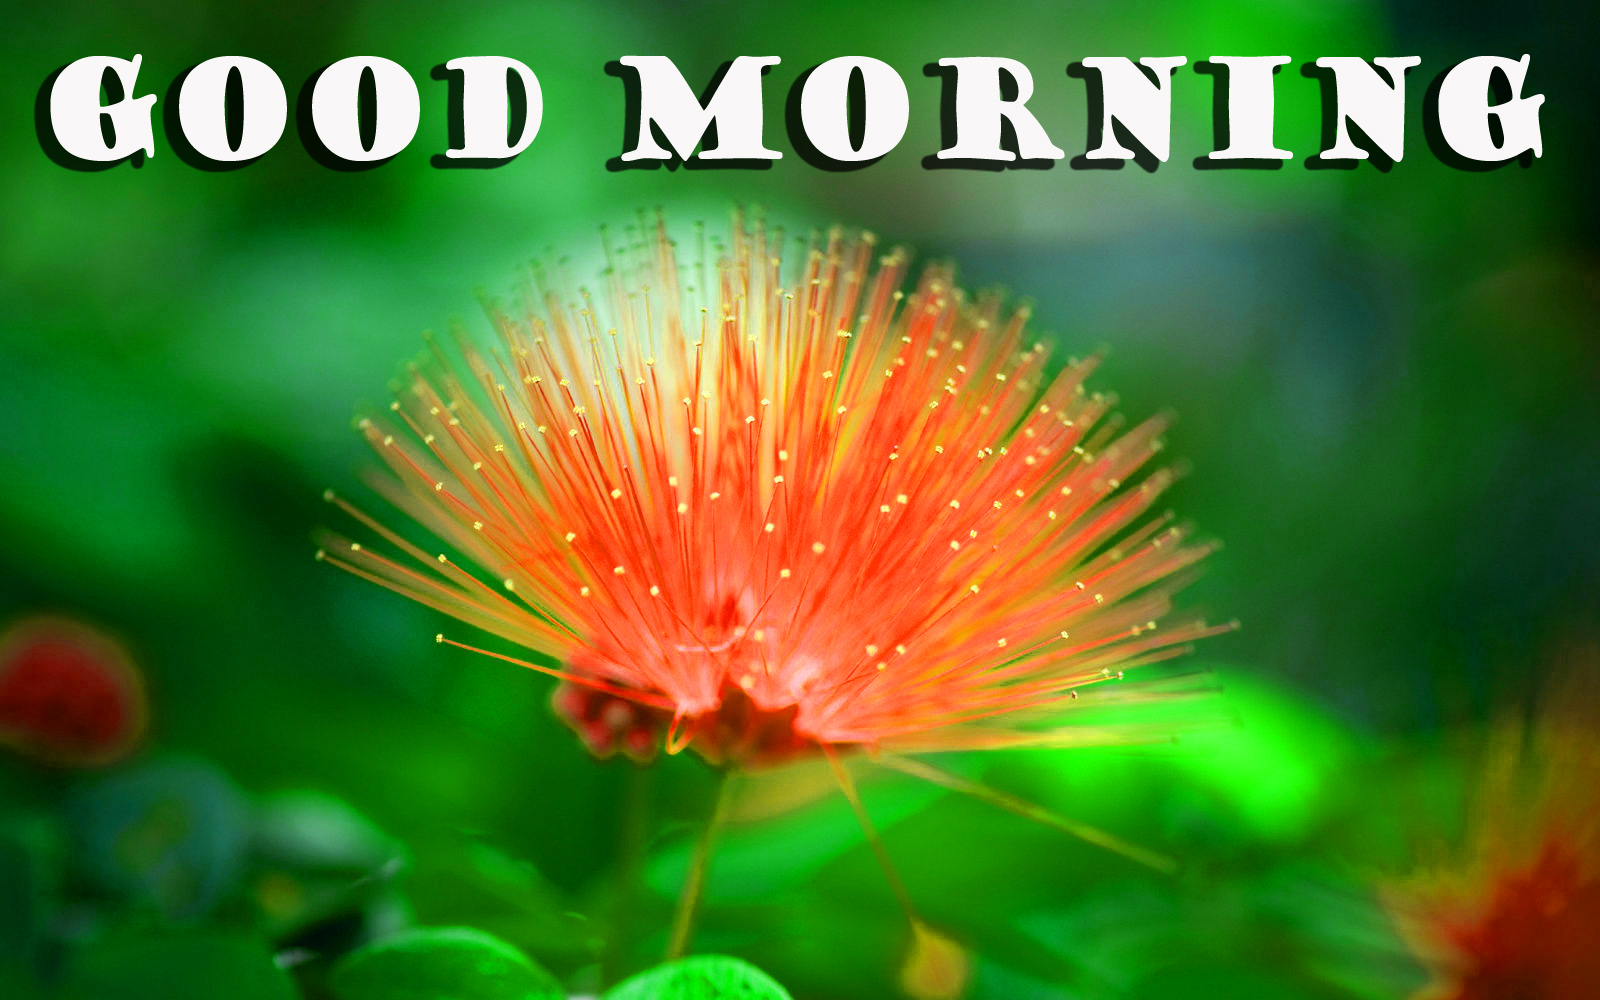 गुड मॉर्निंग New Wonderful Good Morning Pictures Images HD For Facebook